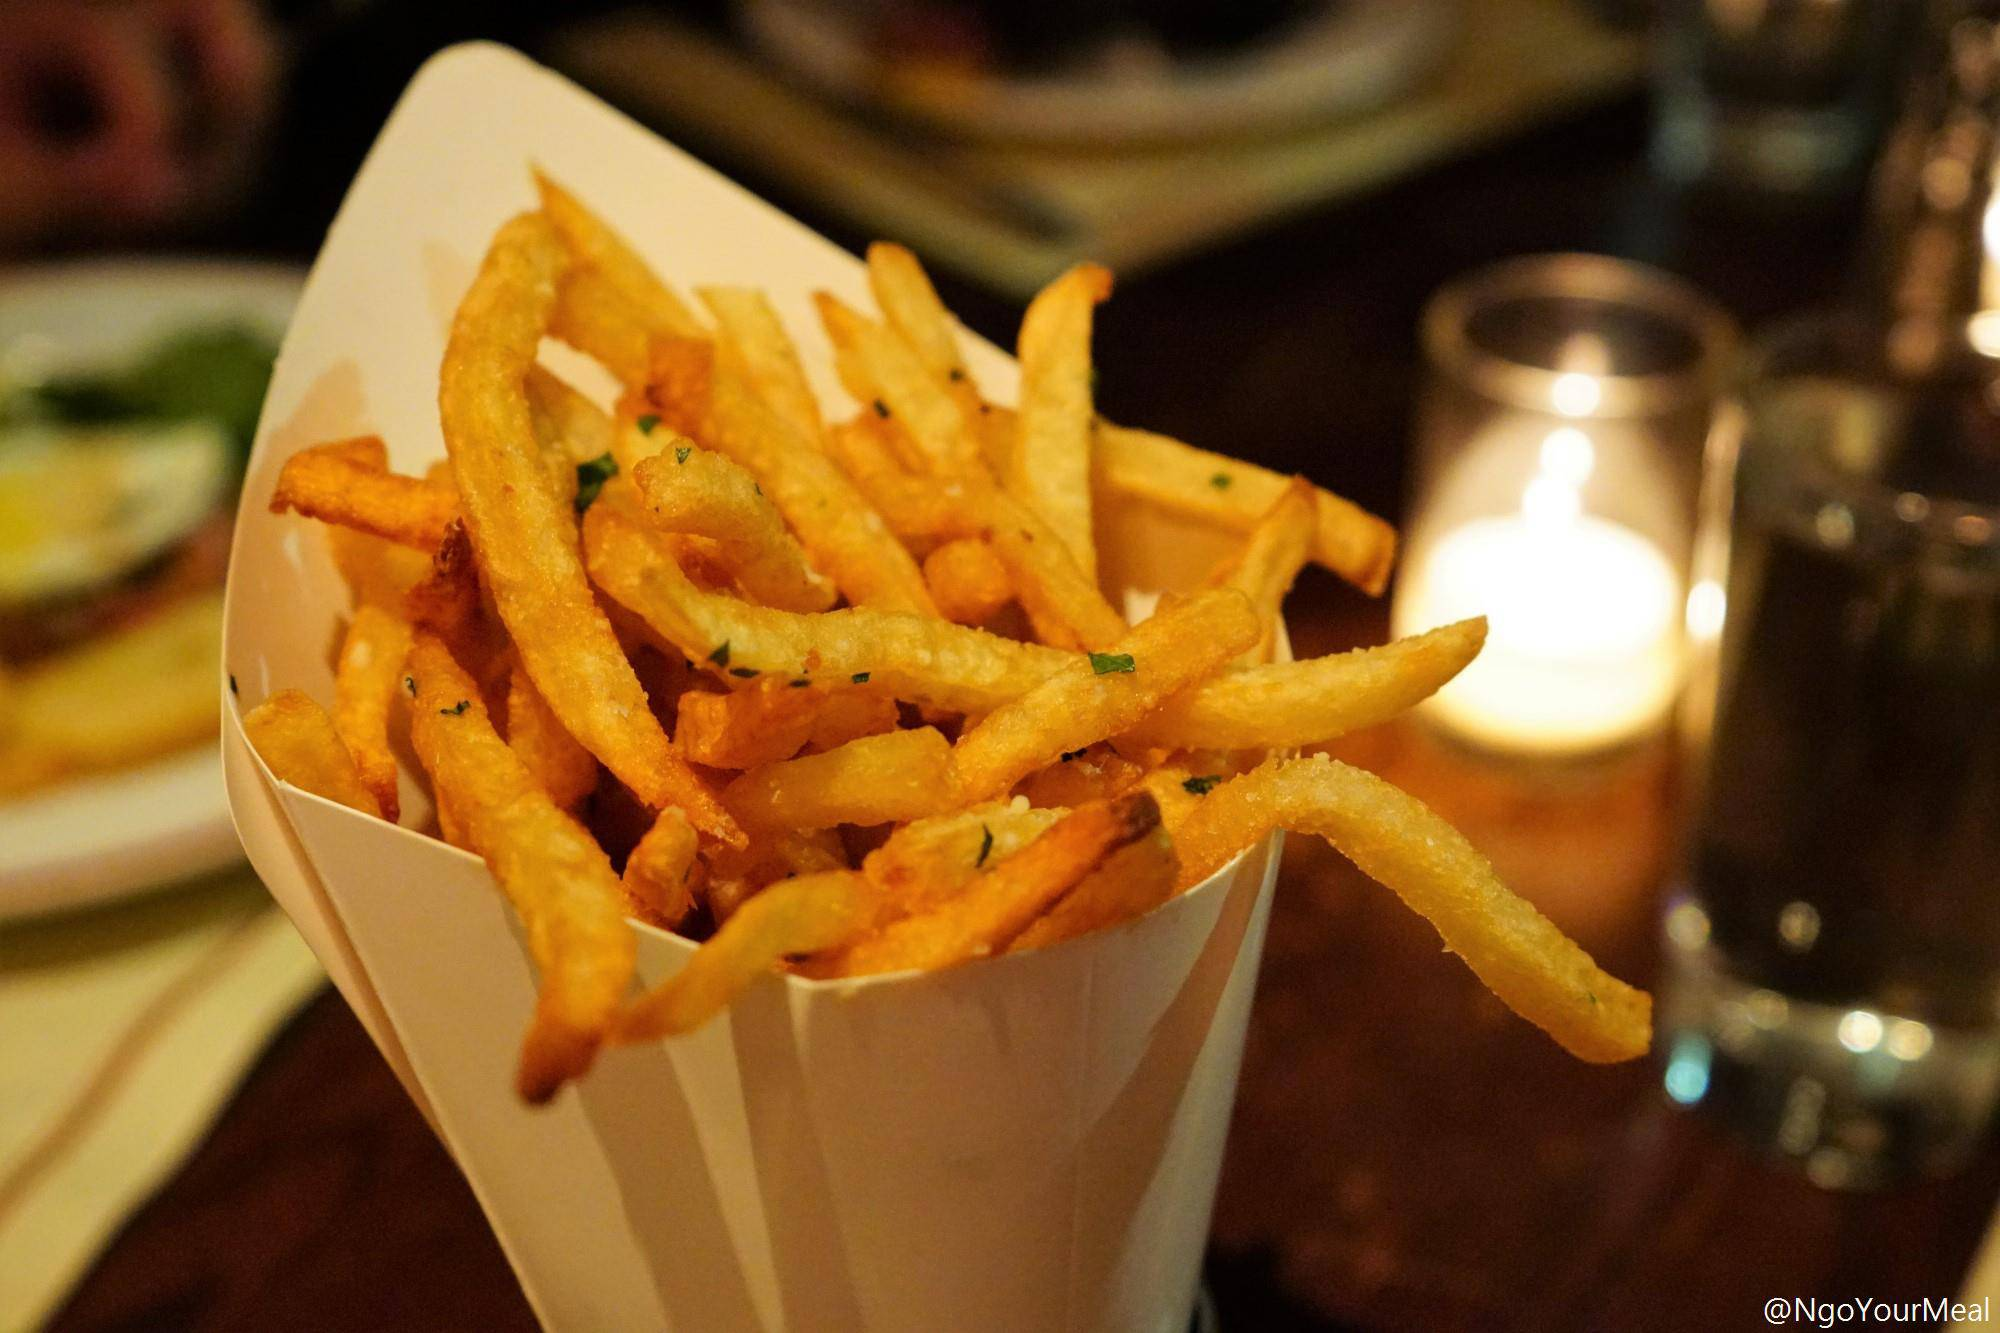 Truffle Pomme Frites with Parmesan, Fines Herbes at Gaslight in Boston